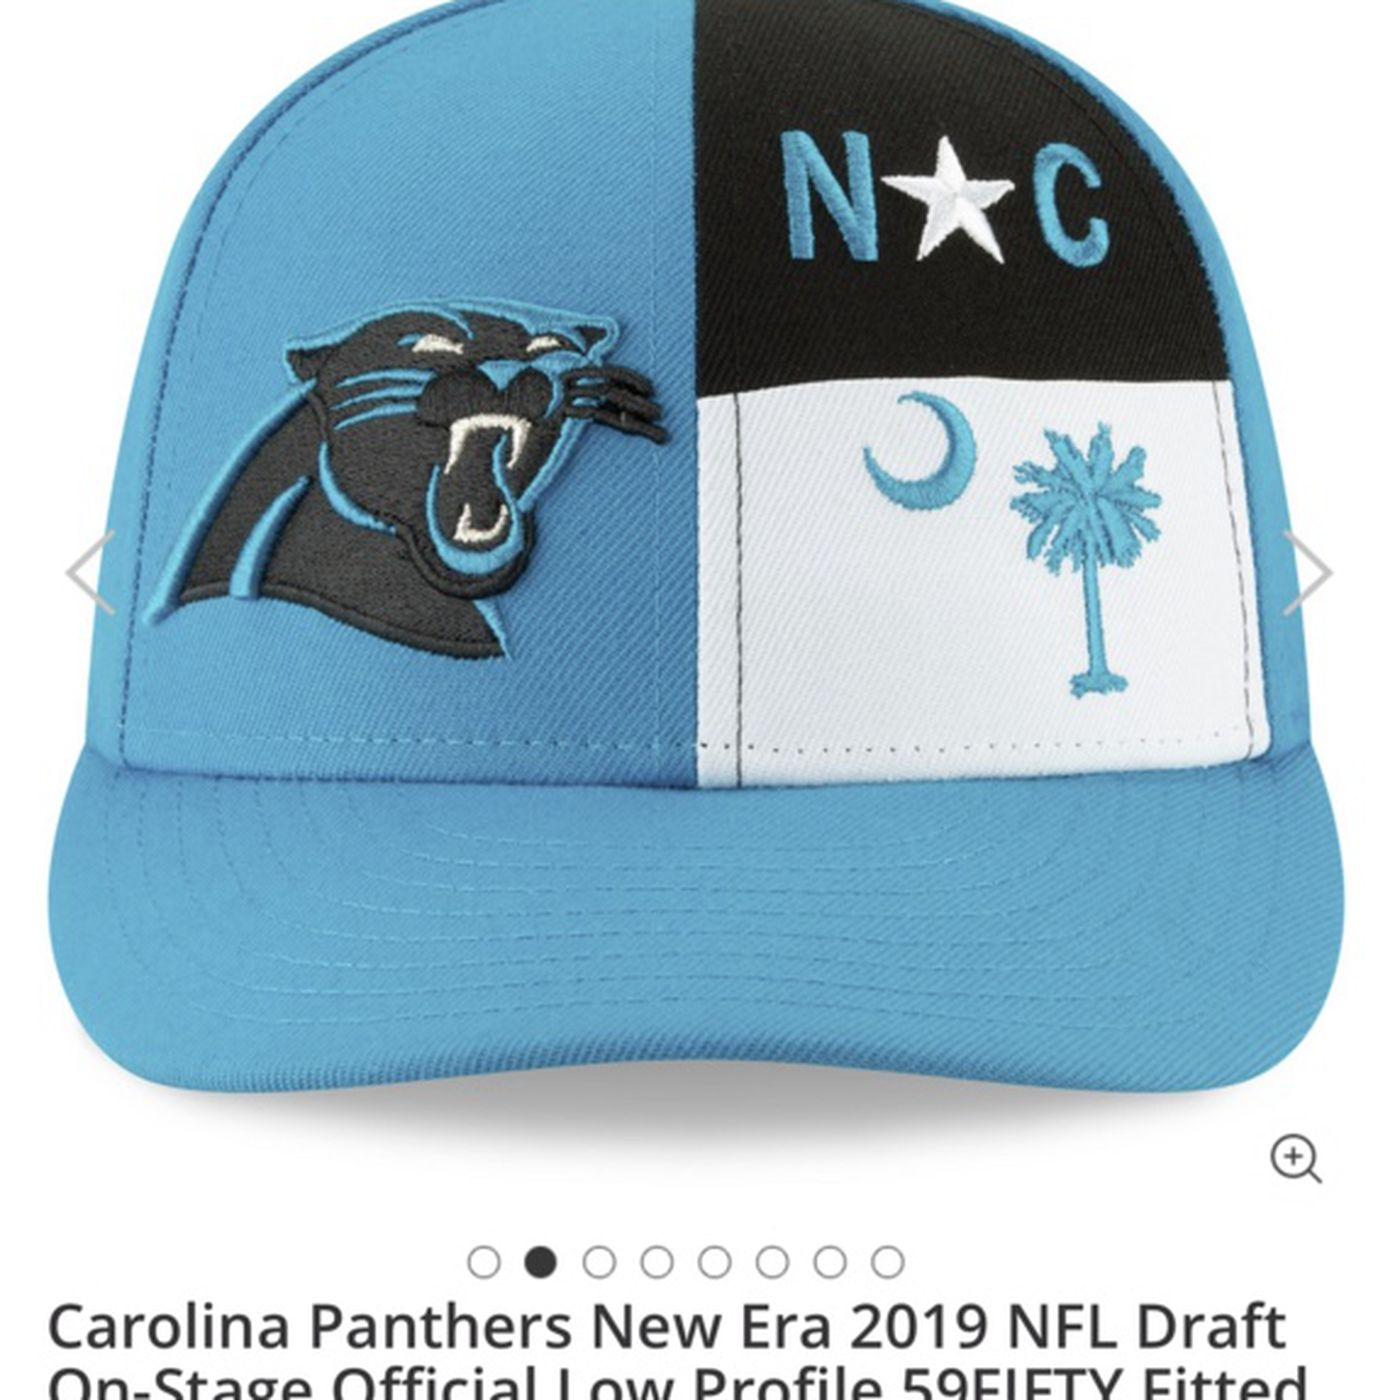 f9dd909c1 Panthers Twitter roasts Carolina's 2019 NFL Draft cap - Cat Scratch ...